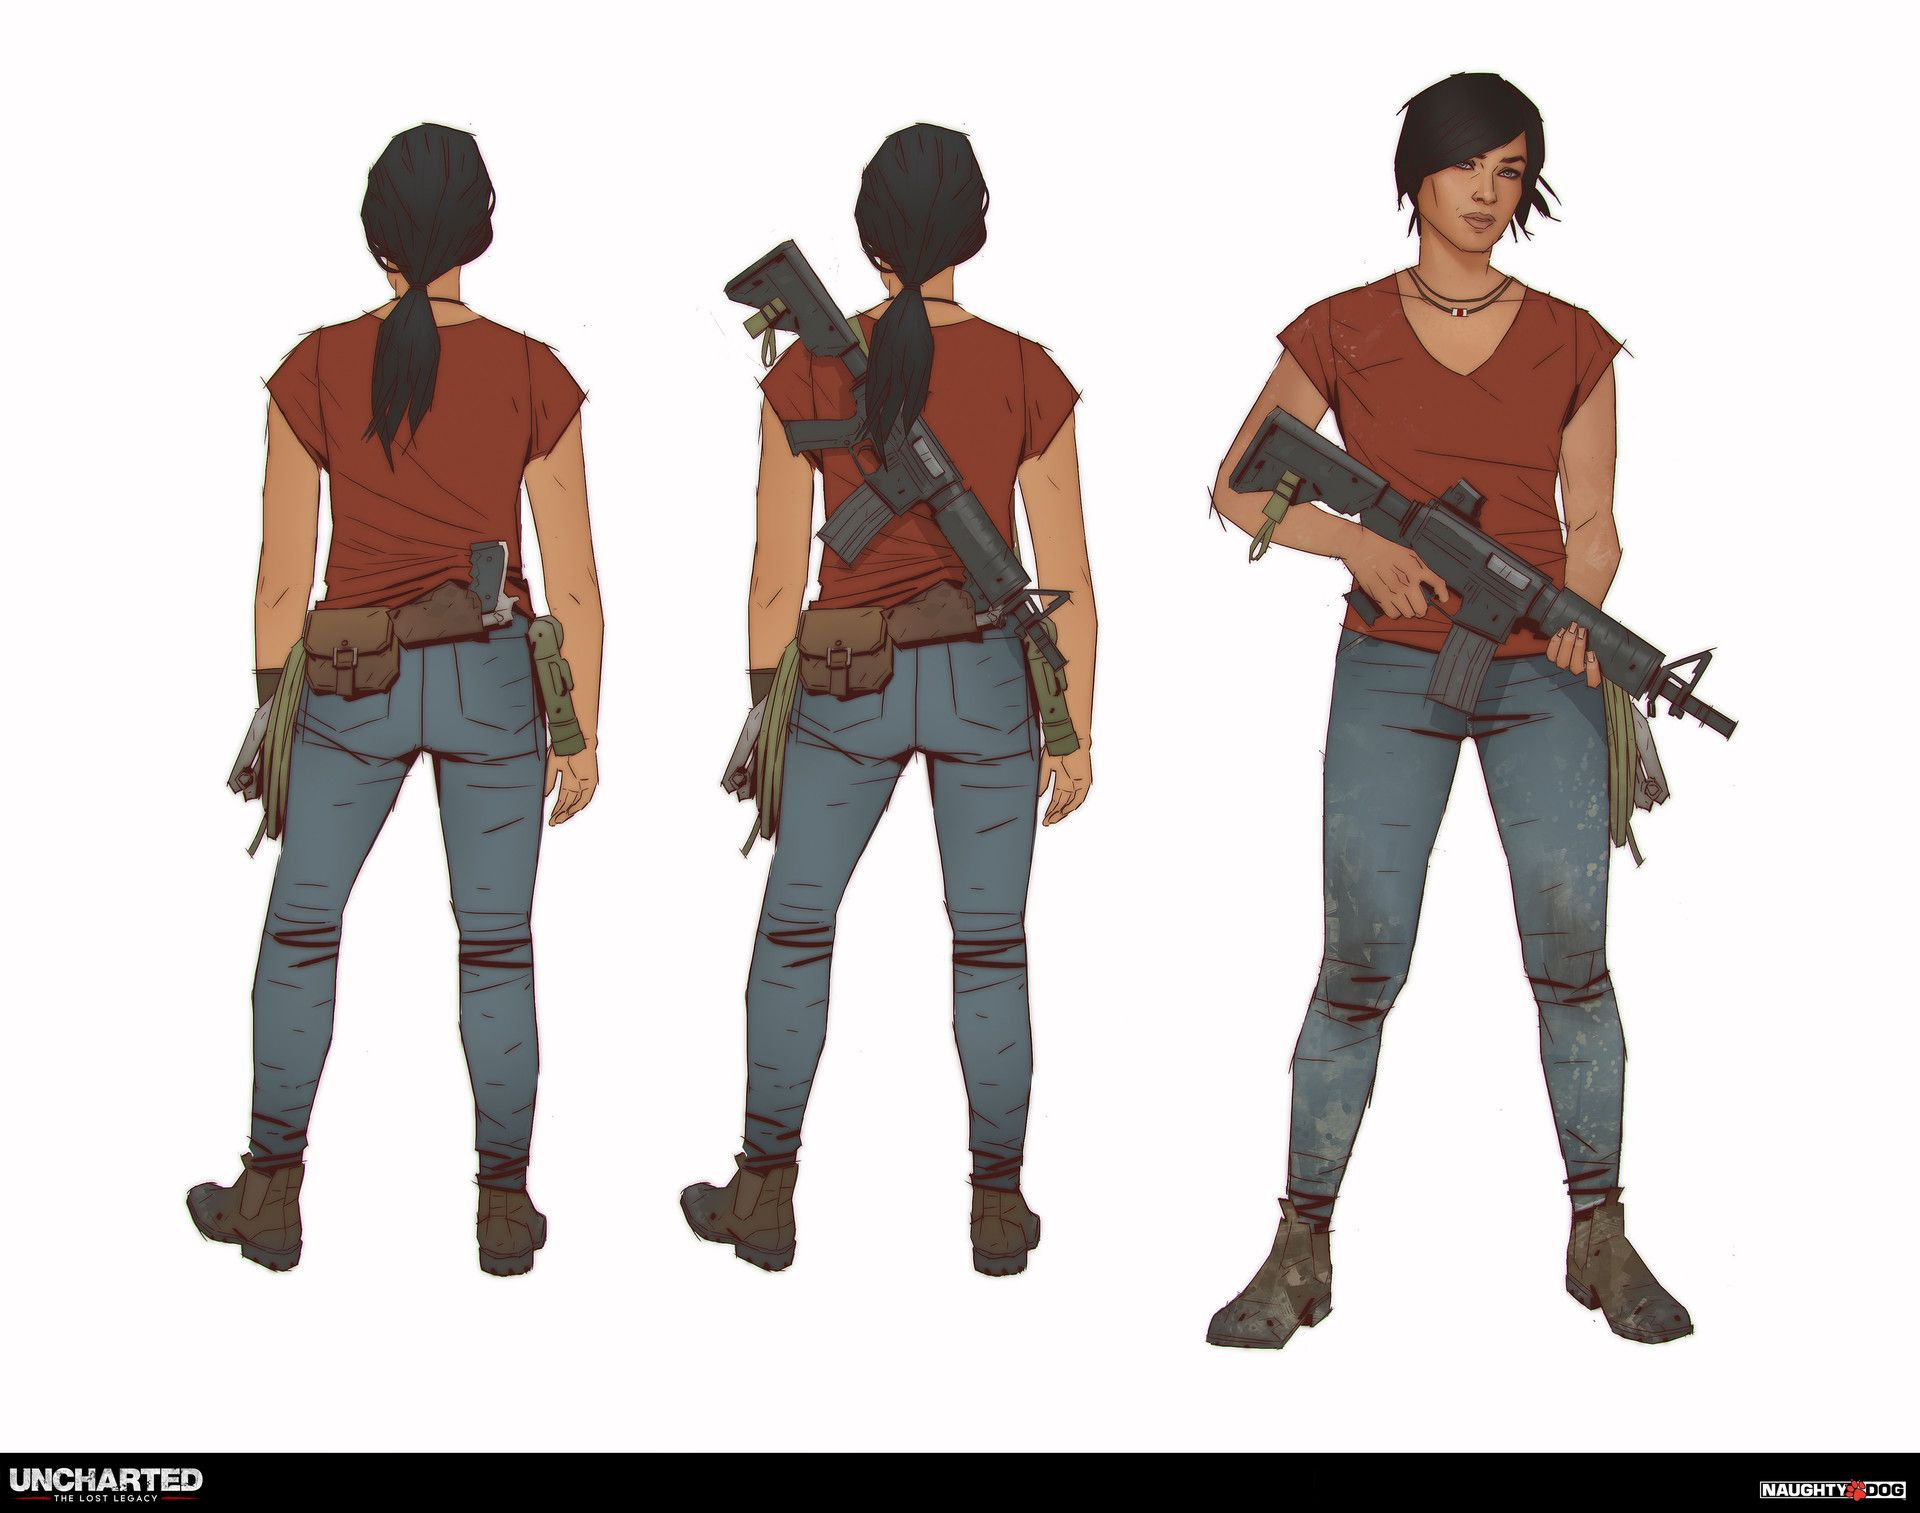 Uncharted - The Lost Legacy: Character Concept art - Chloe Frazer, Richard  Lyons